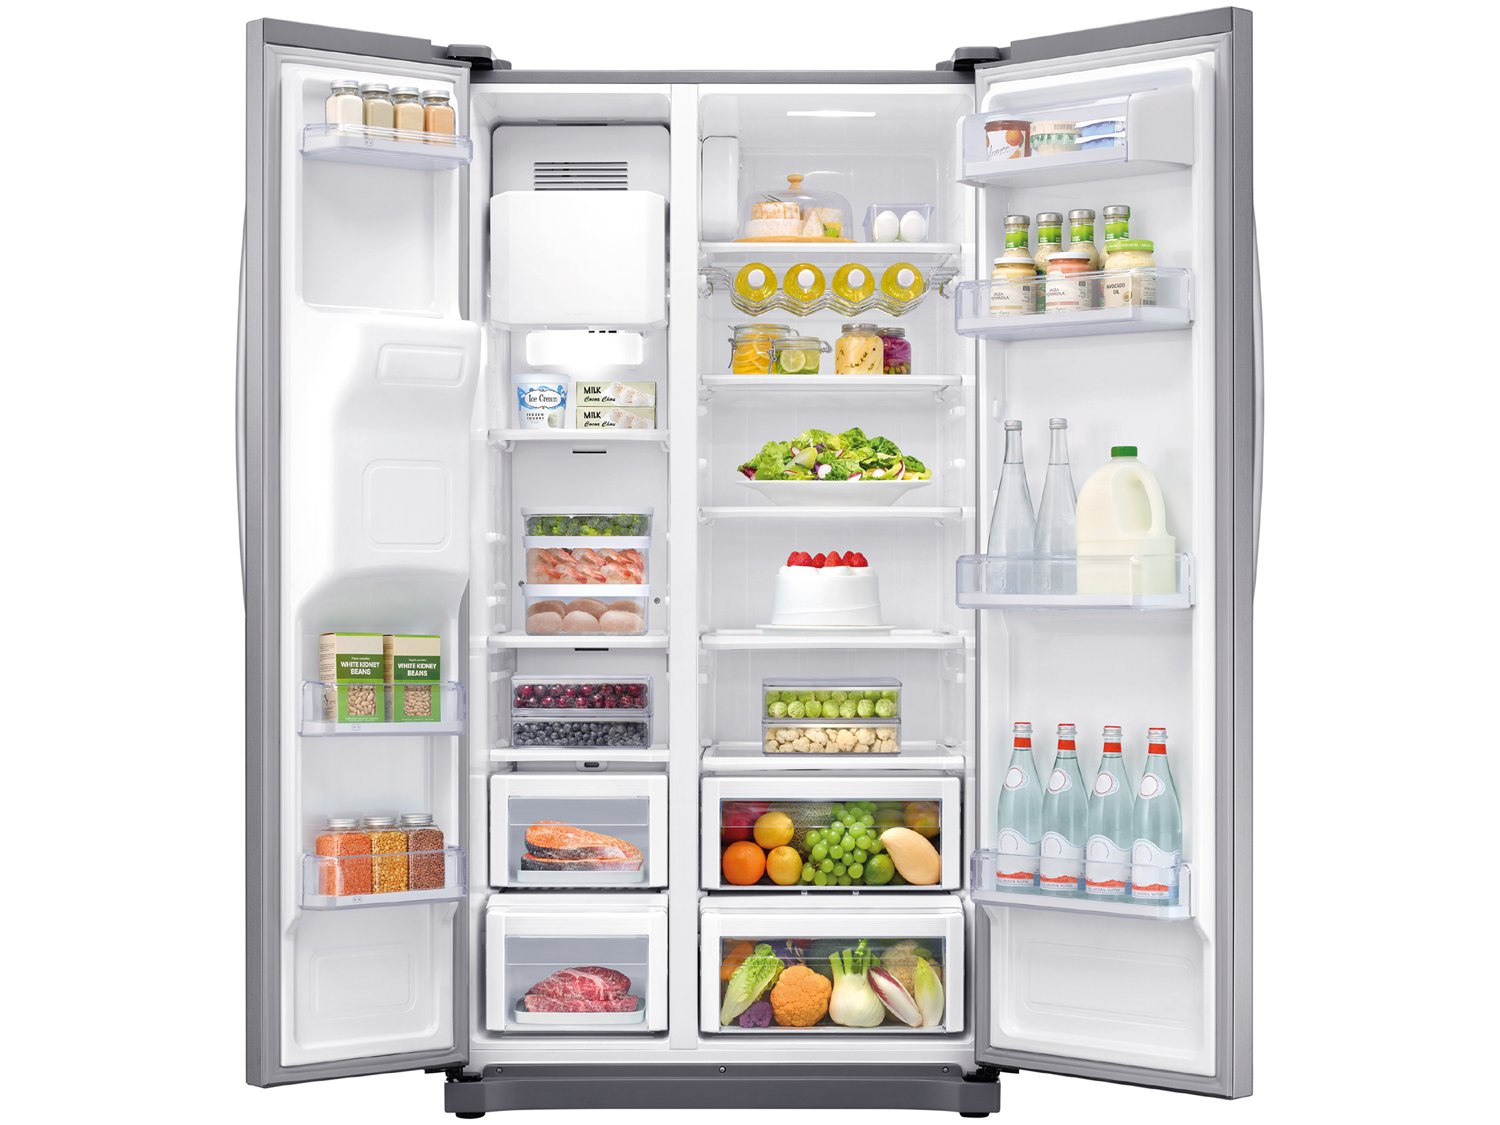 Refrigerador Samsung RS50N Side by Side Inox Look - 501L - 110v - 6